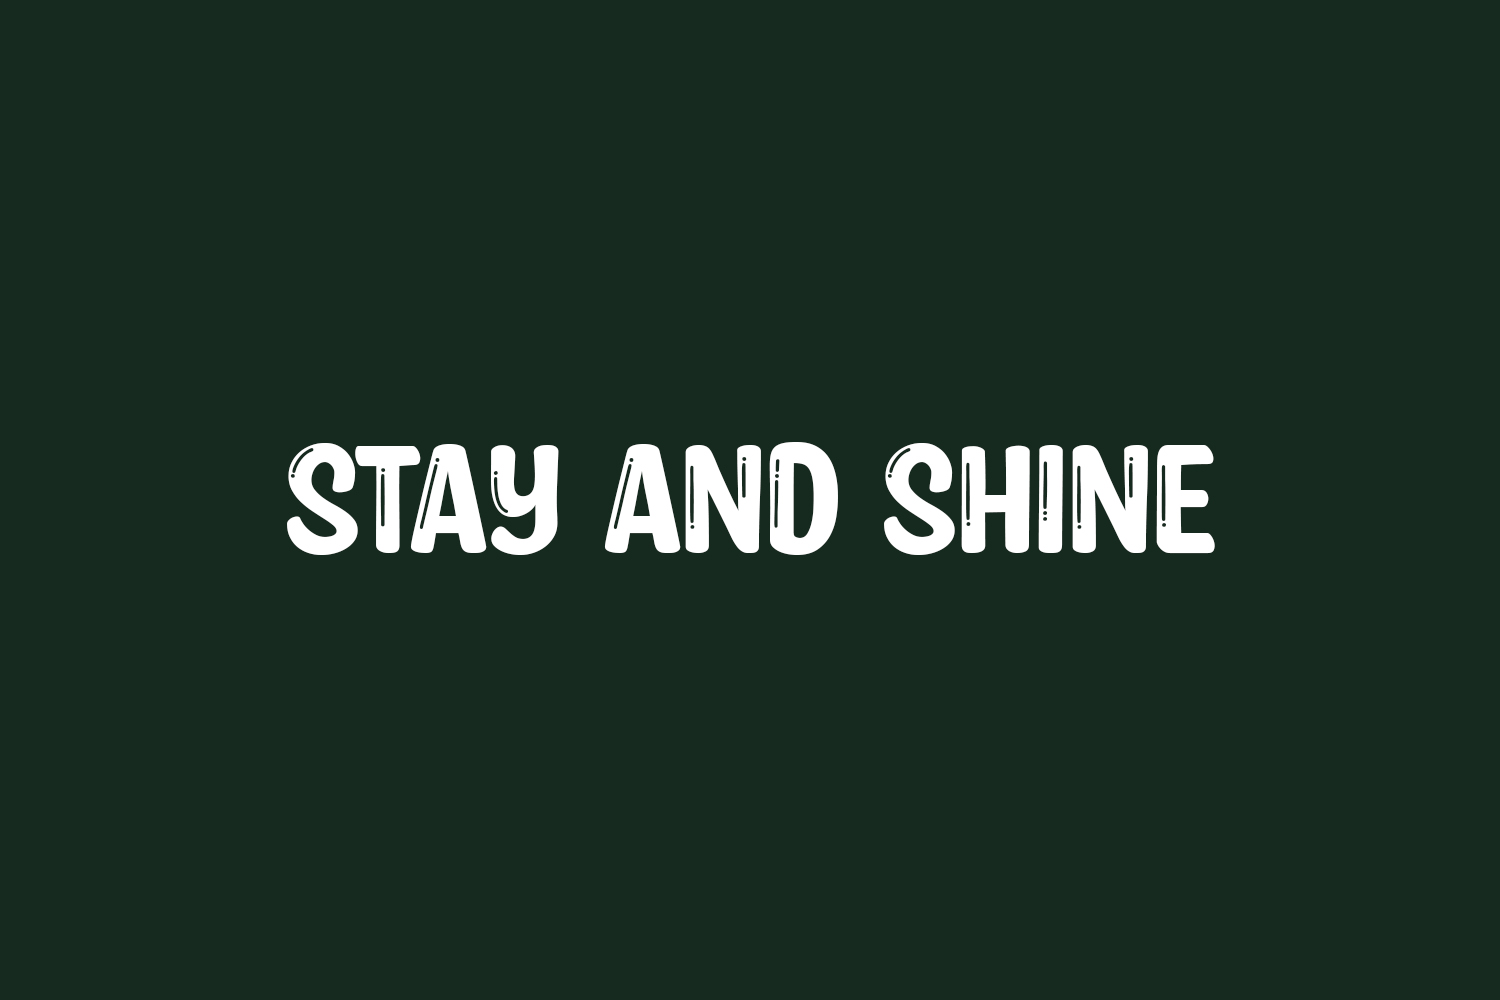 Stay and Shine Free Font